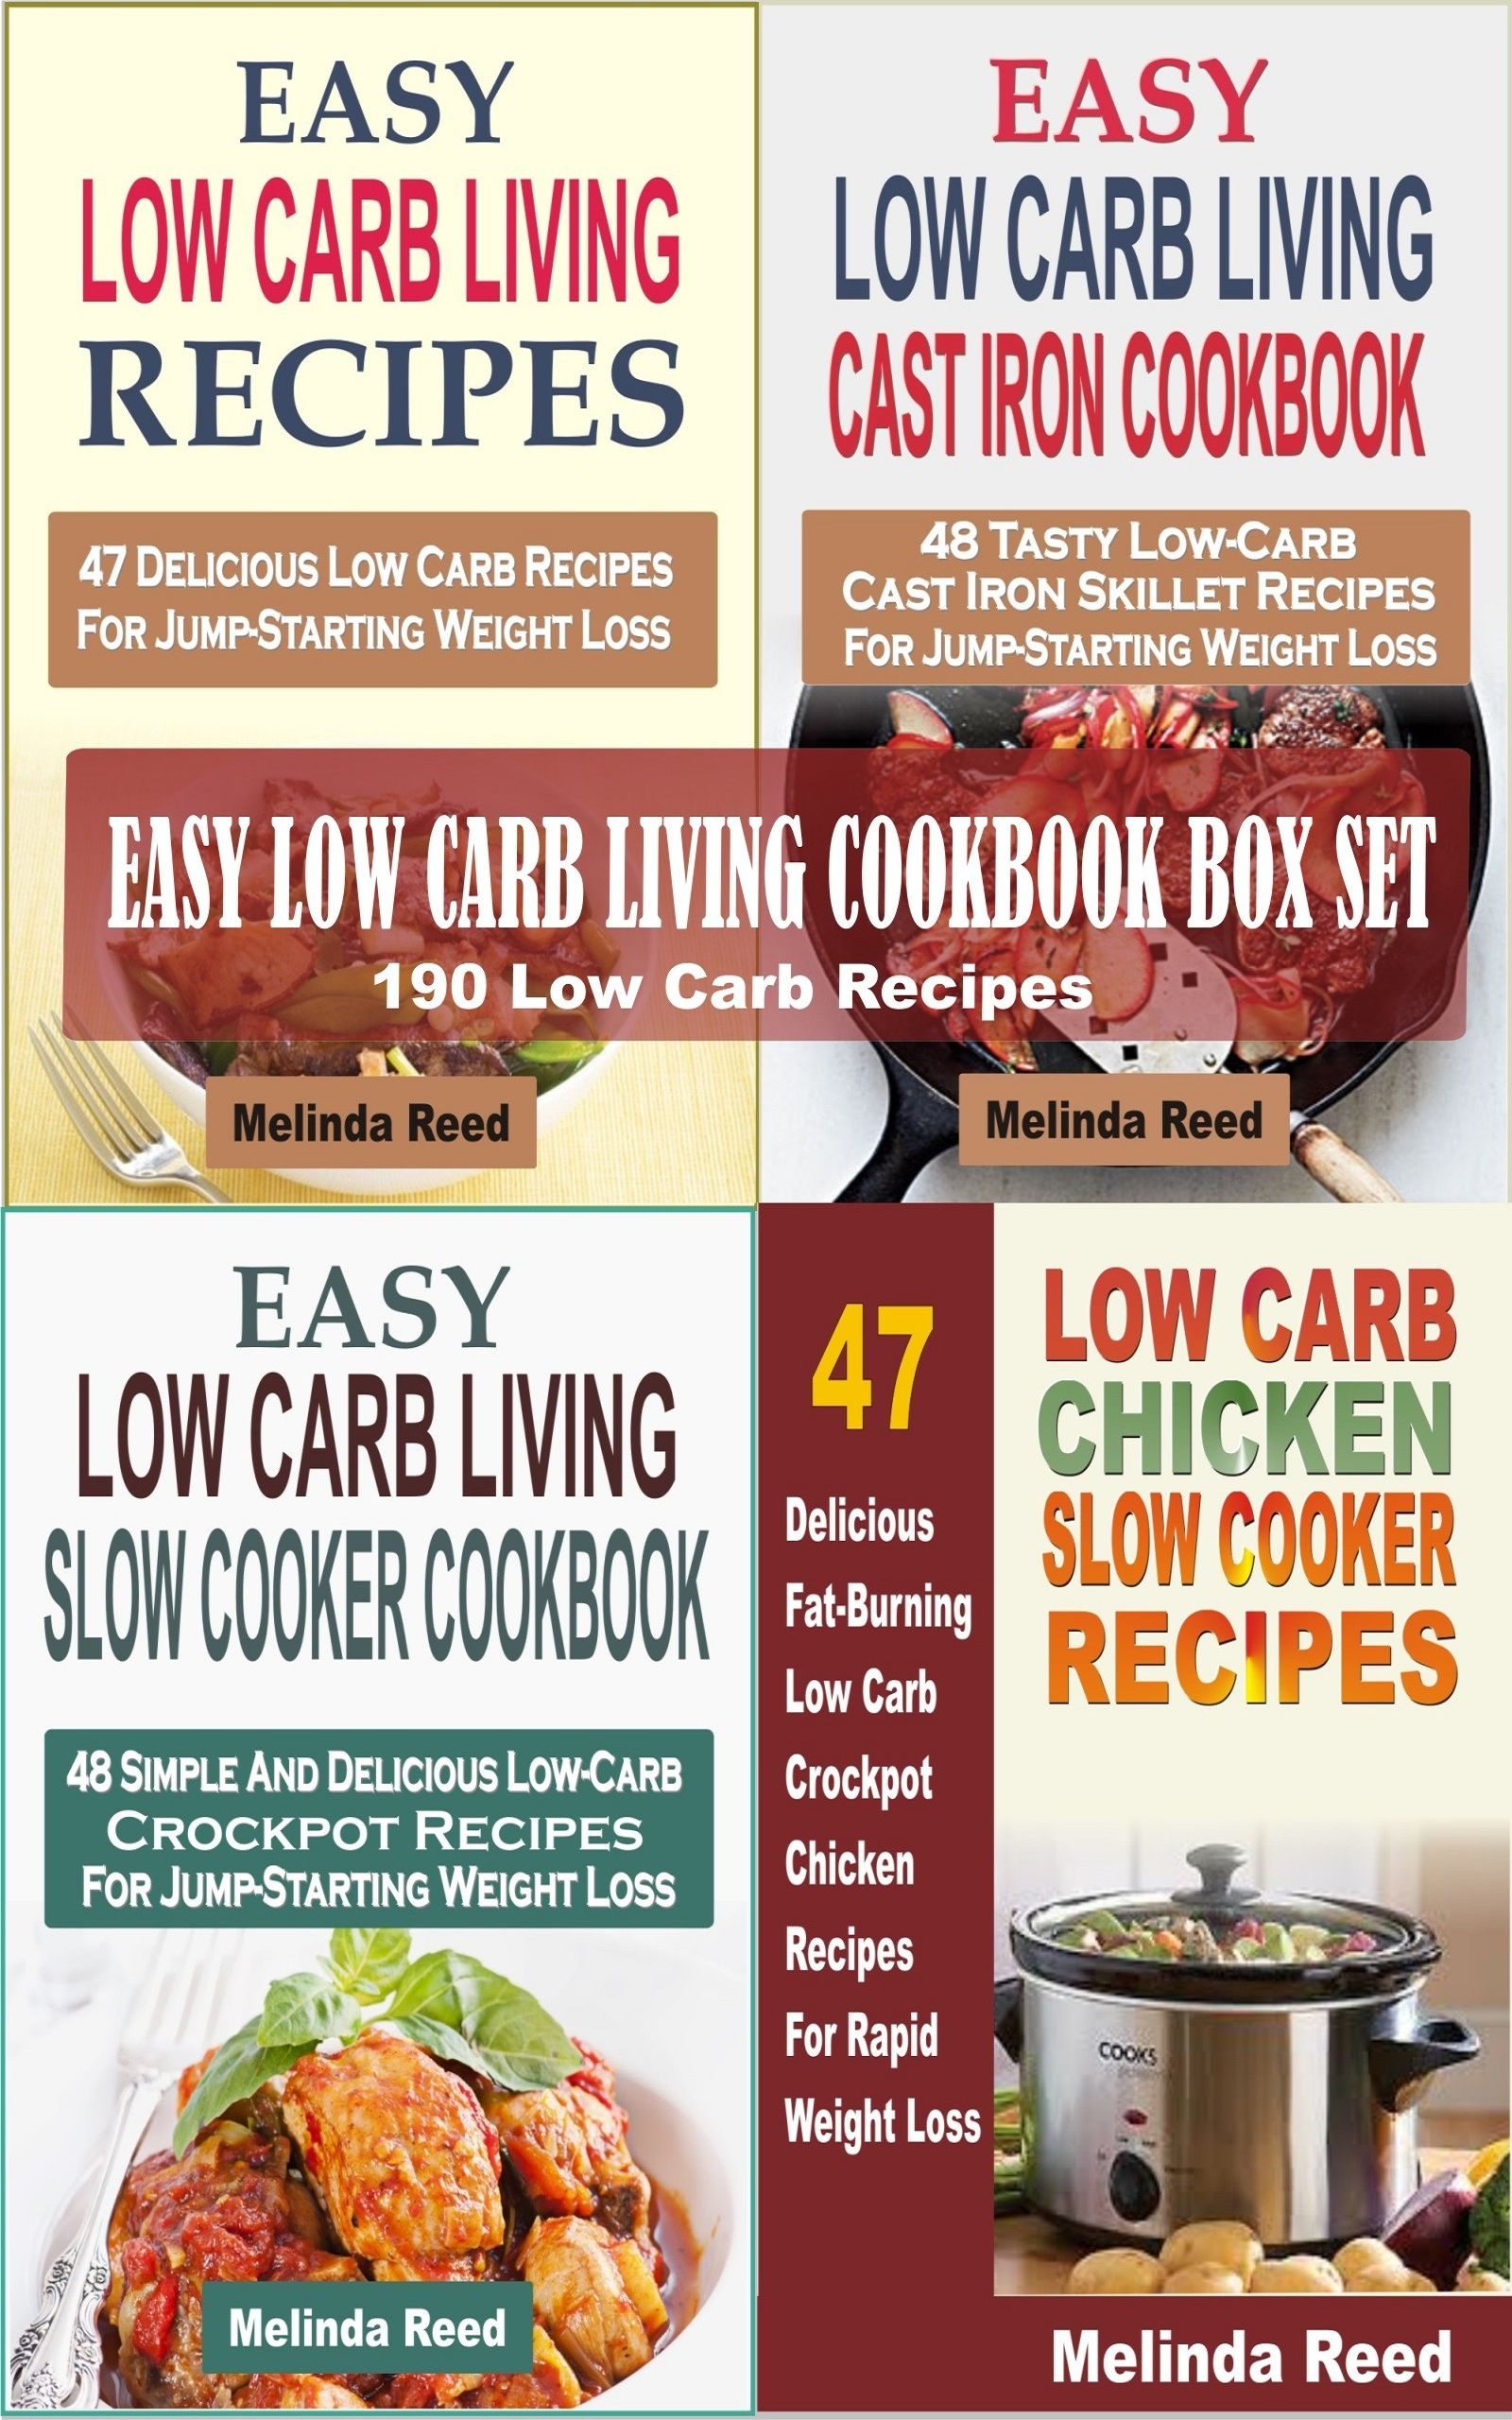 Easy Low Carb Living Cookbook Box Set